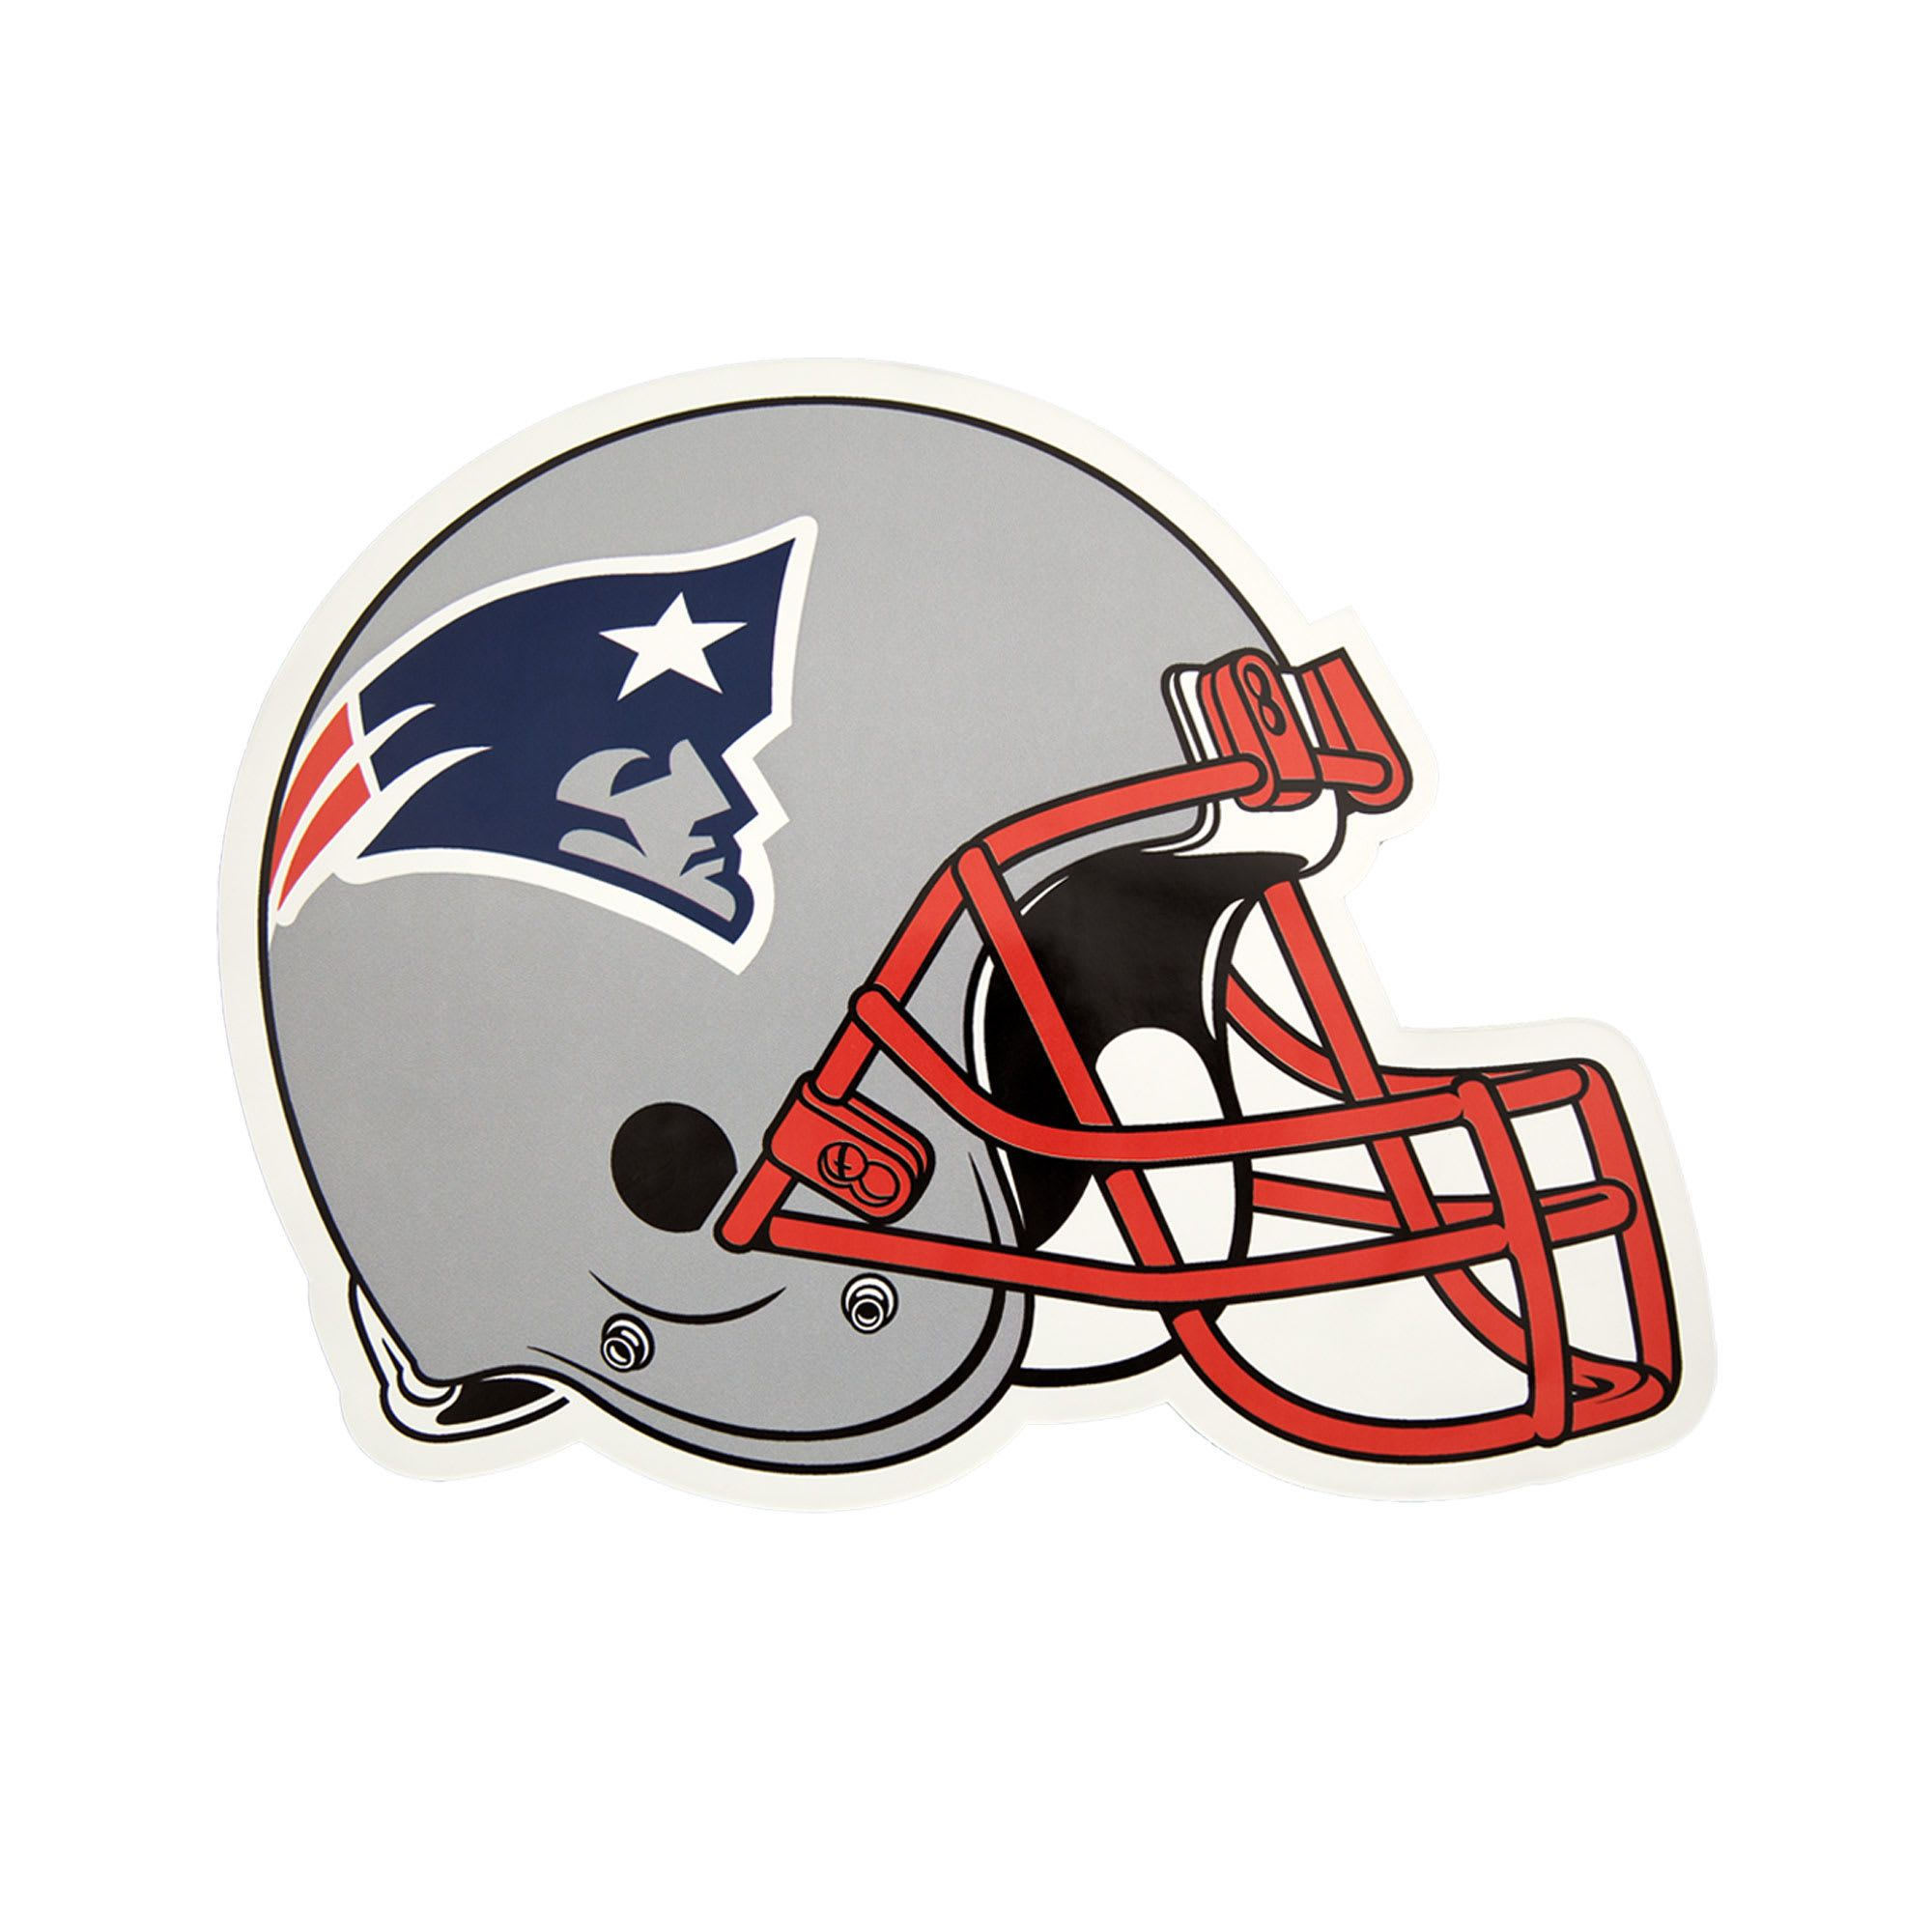 New England Patriots Helmet X Large Officially Licensed Pool Graphic New England Patriots Helmet New England Patriots Nfl New England Patriots